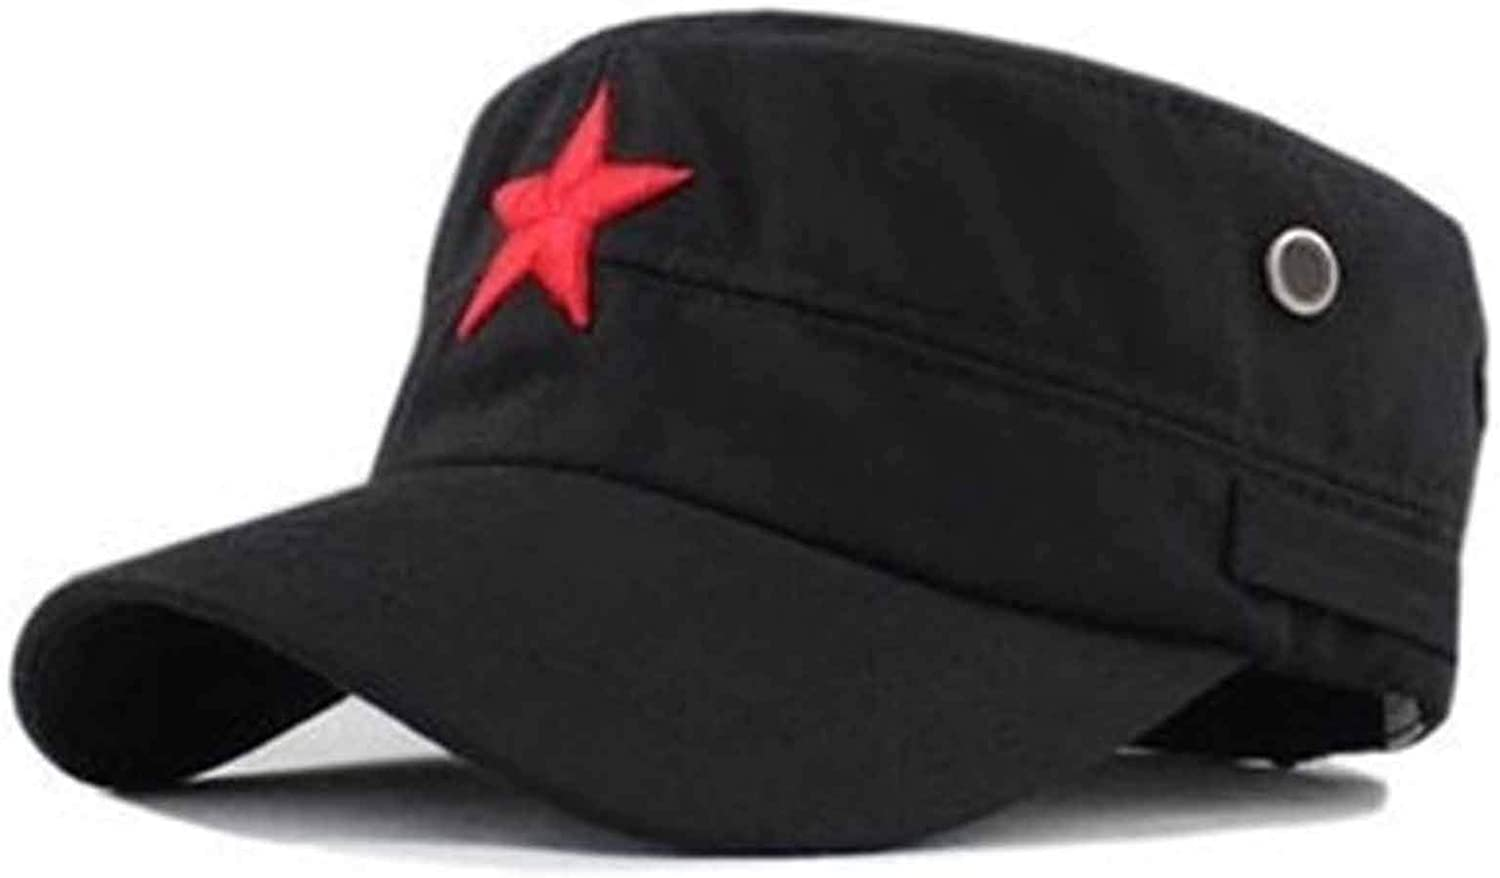 New Vintage Unisex Women Men Baseball Cap Fabric Adjustable Red Star Outdoor Sun Casual Army Hat